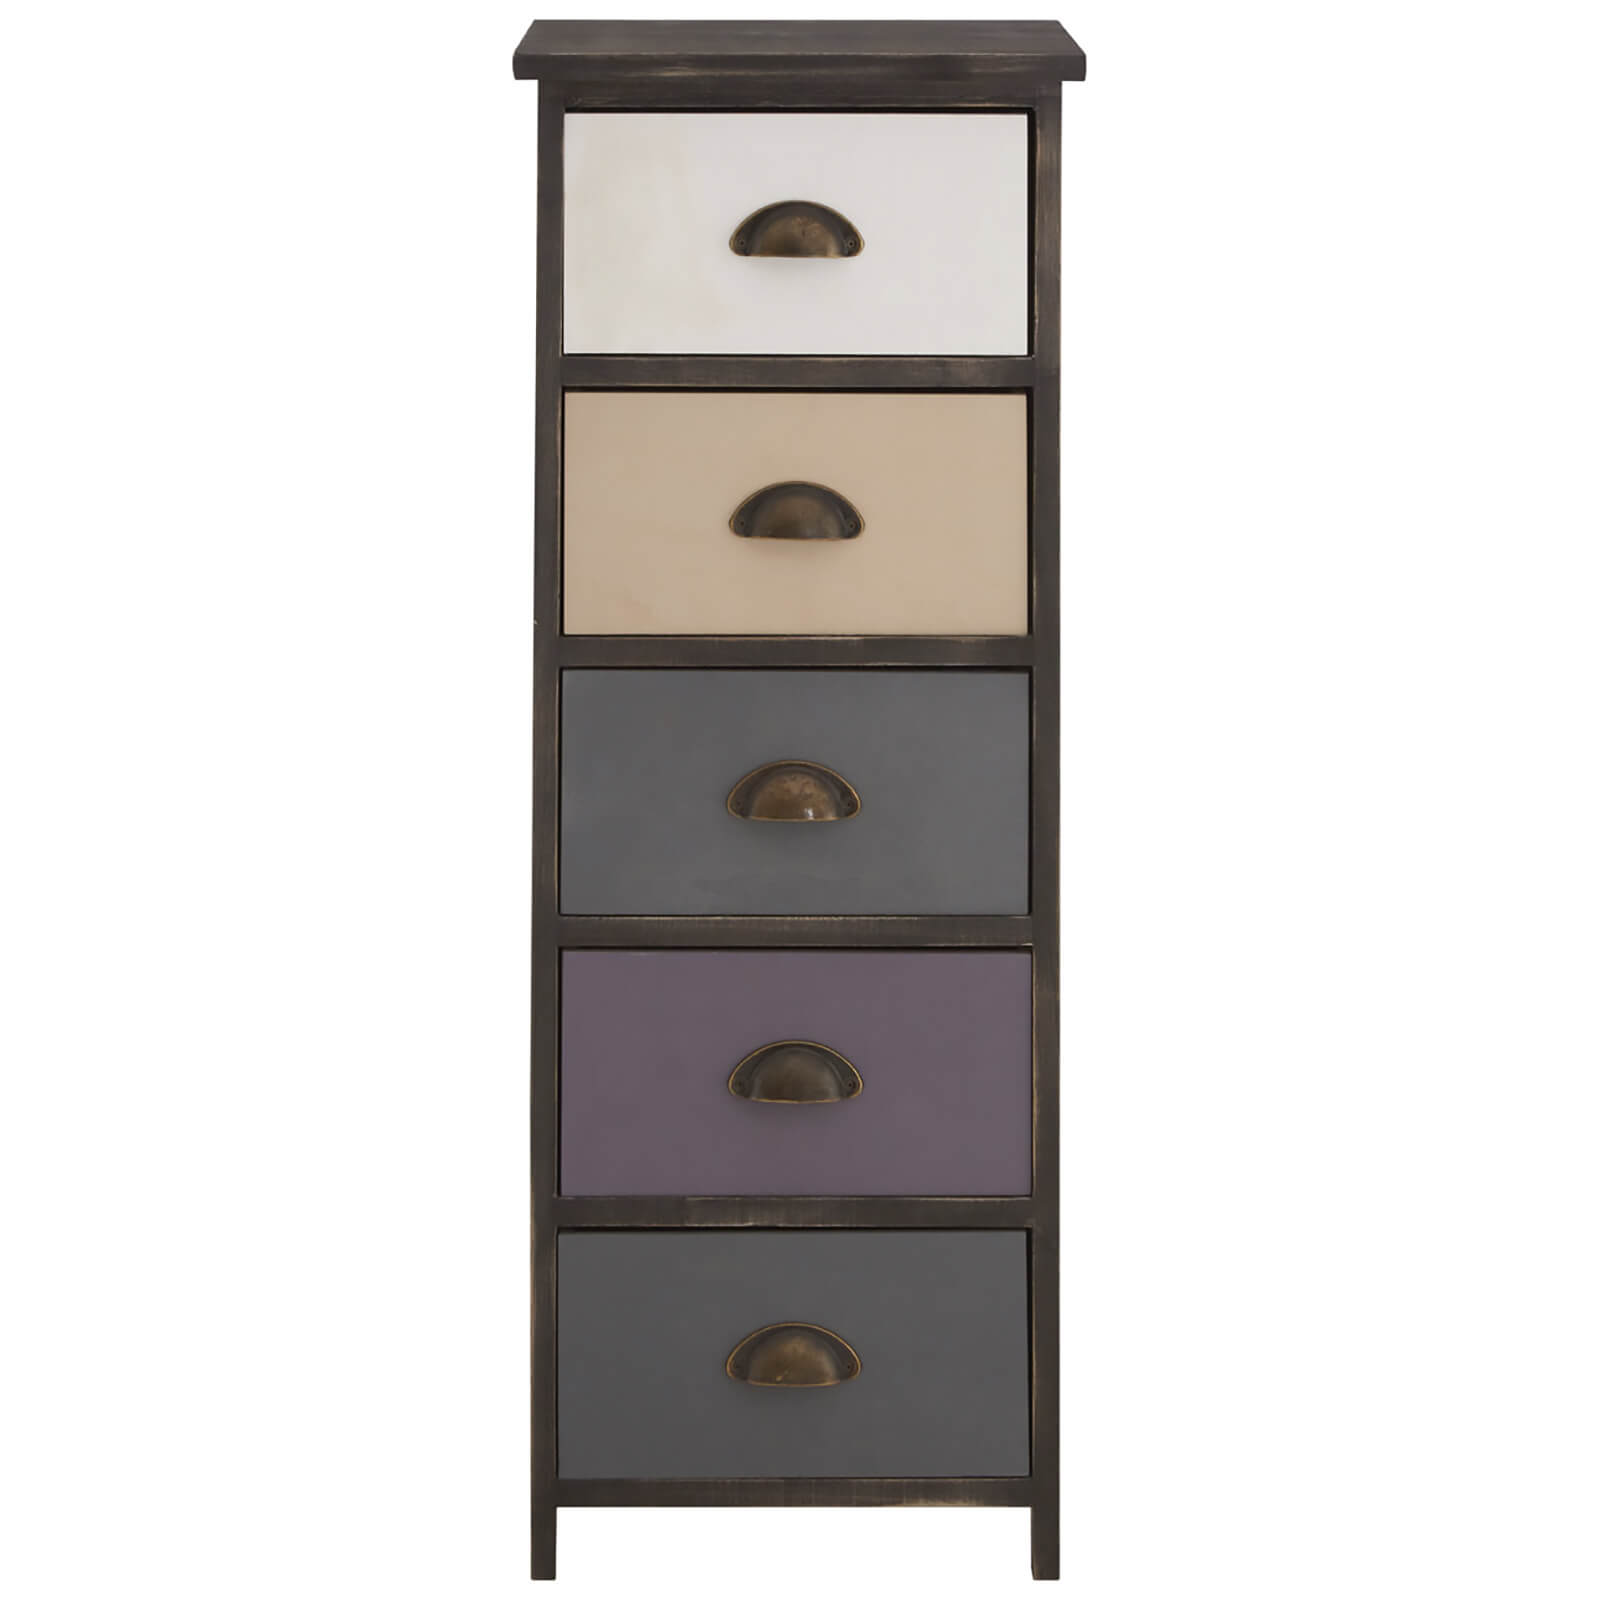 Fifty Five South Urban Loft Five Drawer Chest - Brown Wash